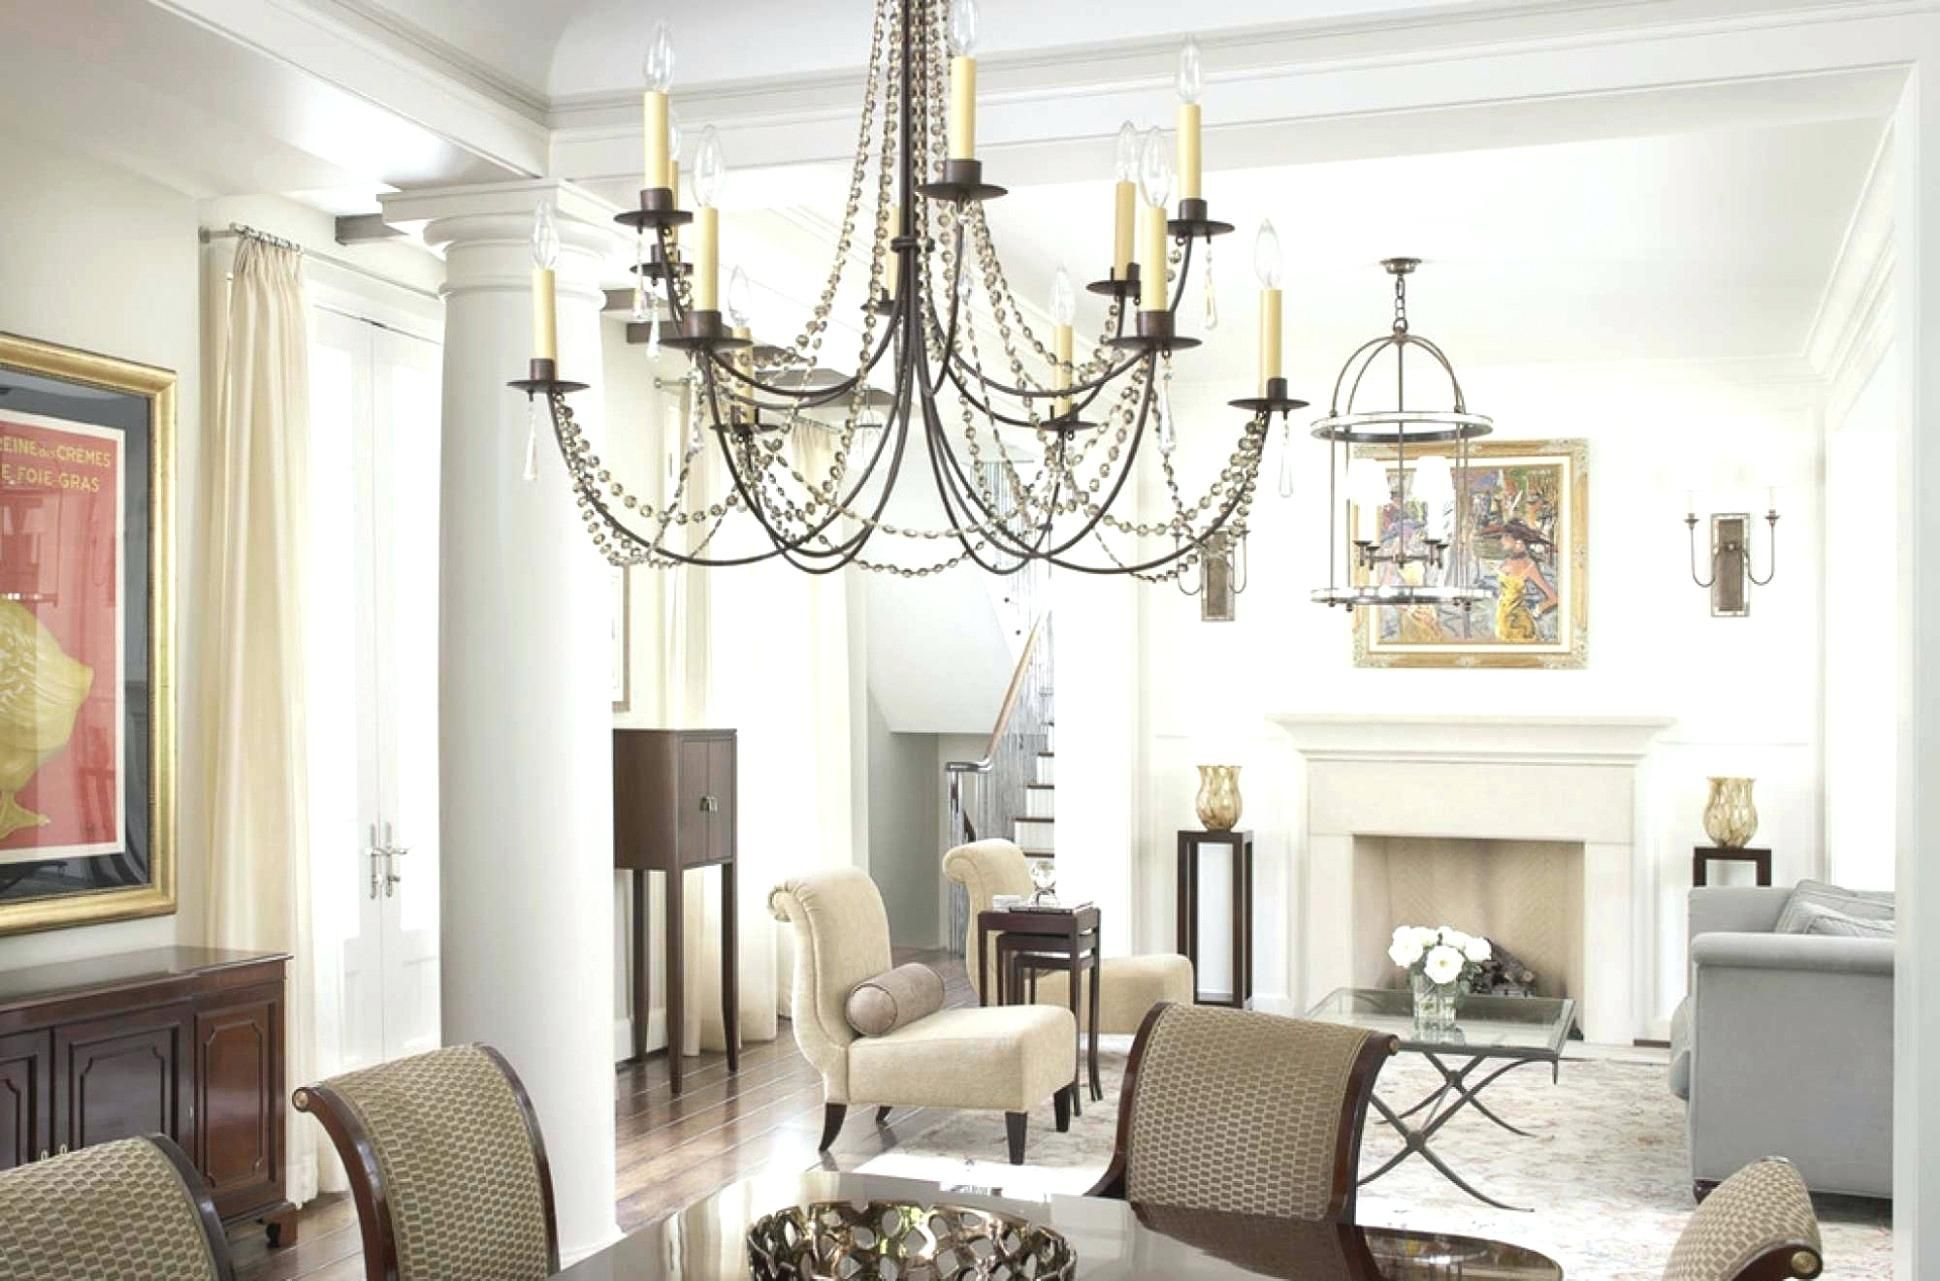 Stunning Large Dining Room Chandeliers Design Chandelier In Living Room Living Room Lighting Living Room Light Fixtures #rustic #living #room #lights